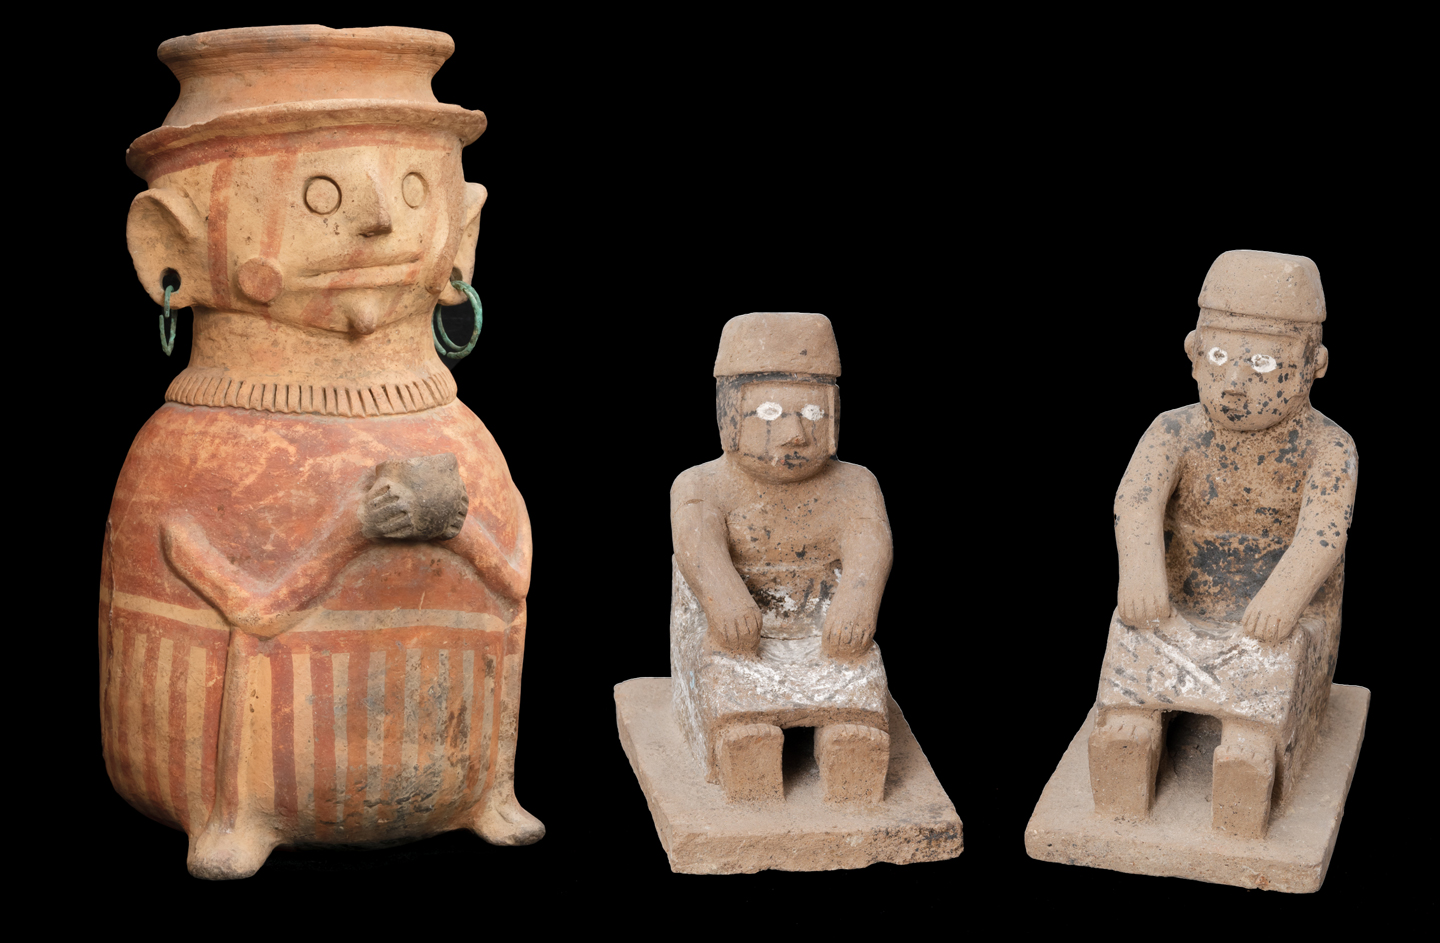 Ecuadorian ceramic artifacts